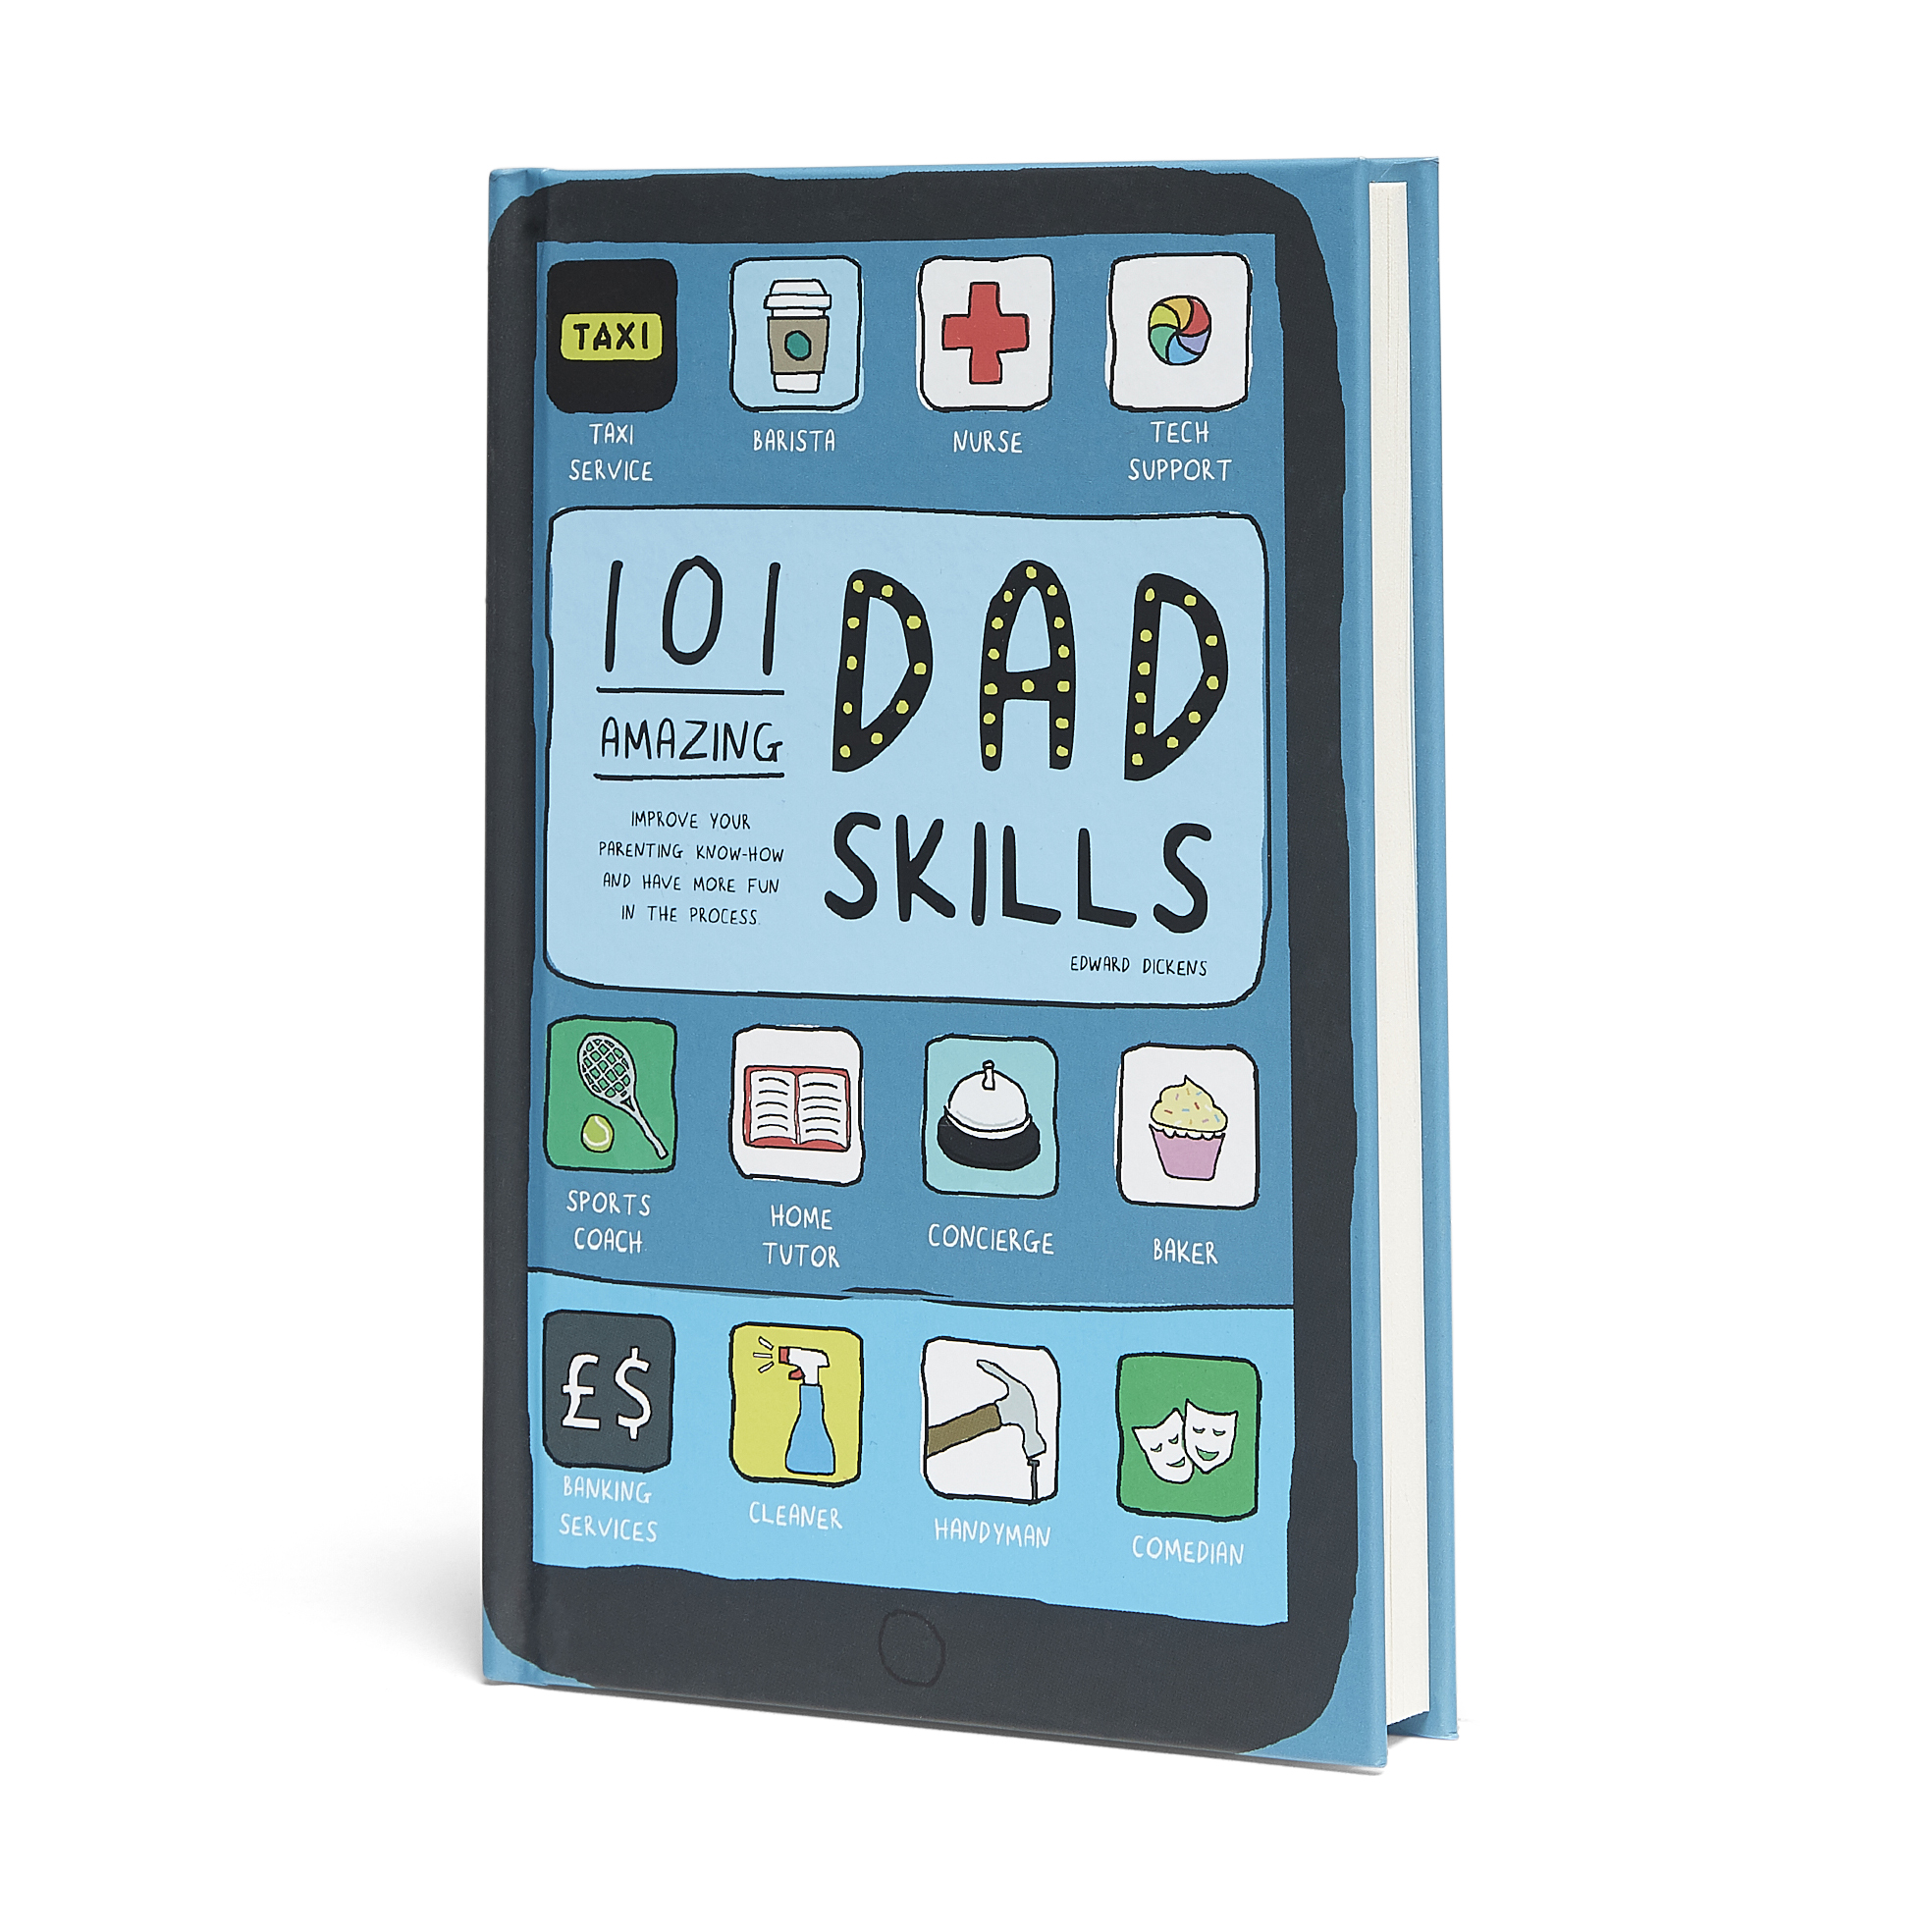 Gadgets & Novelties - 101 Dad Skills - Image 1